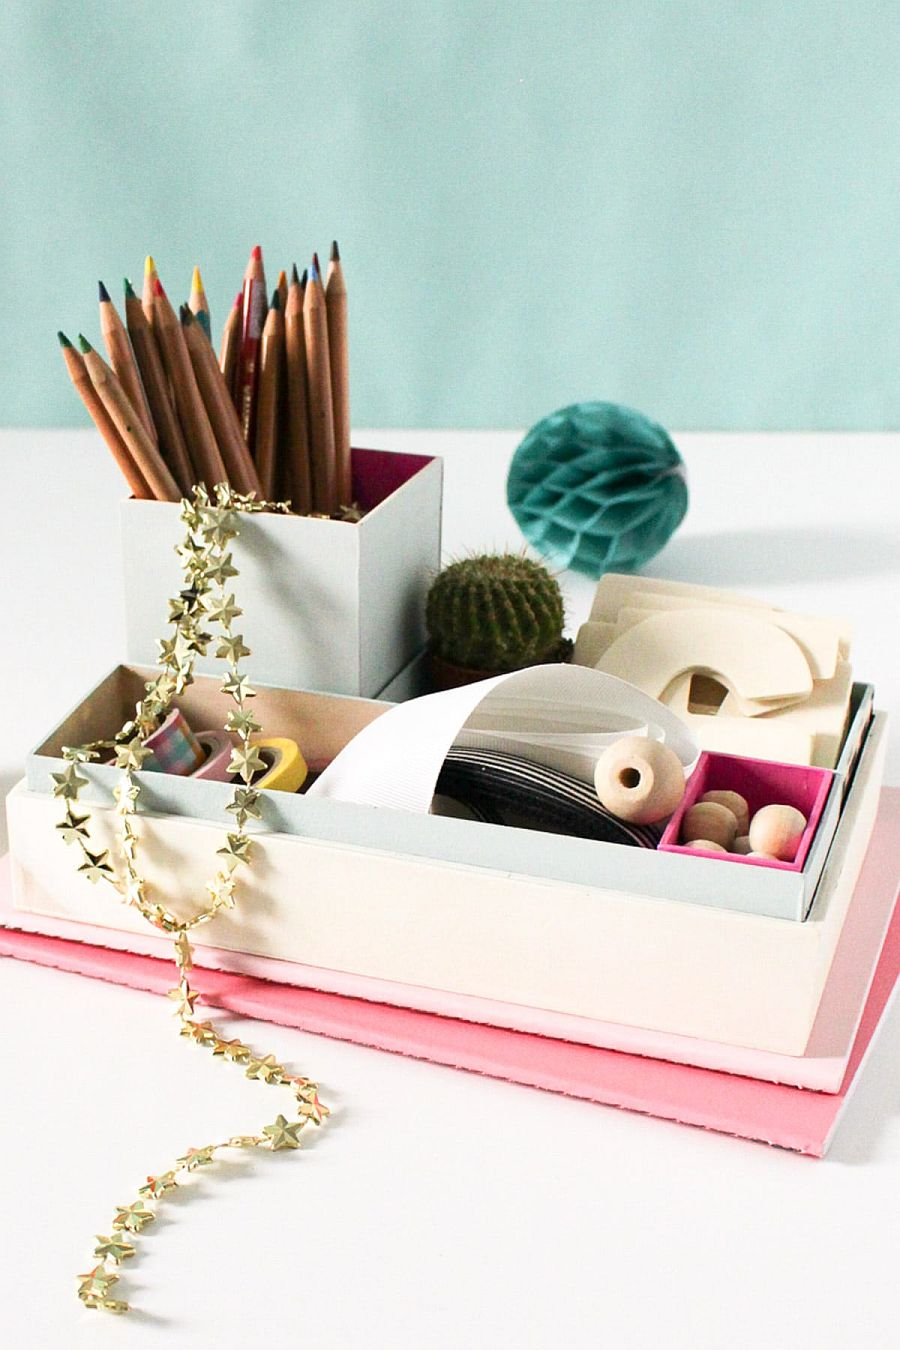 1560528386 489 20 diy desk organizer ideas and projects to try - 20 DIY Desk Organizer Ideas and Projects to Try